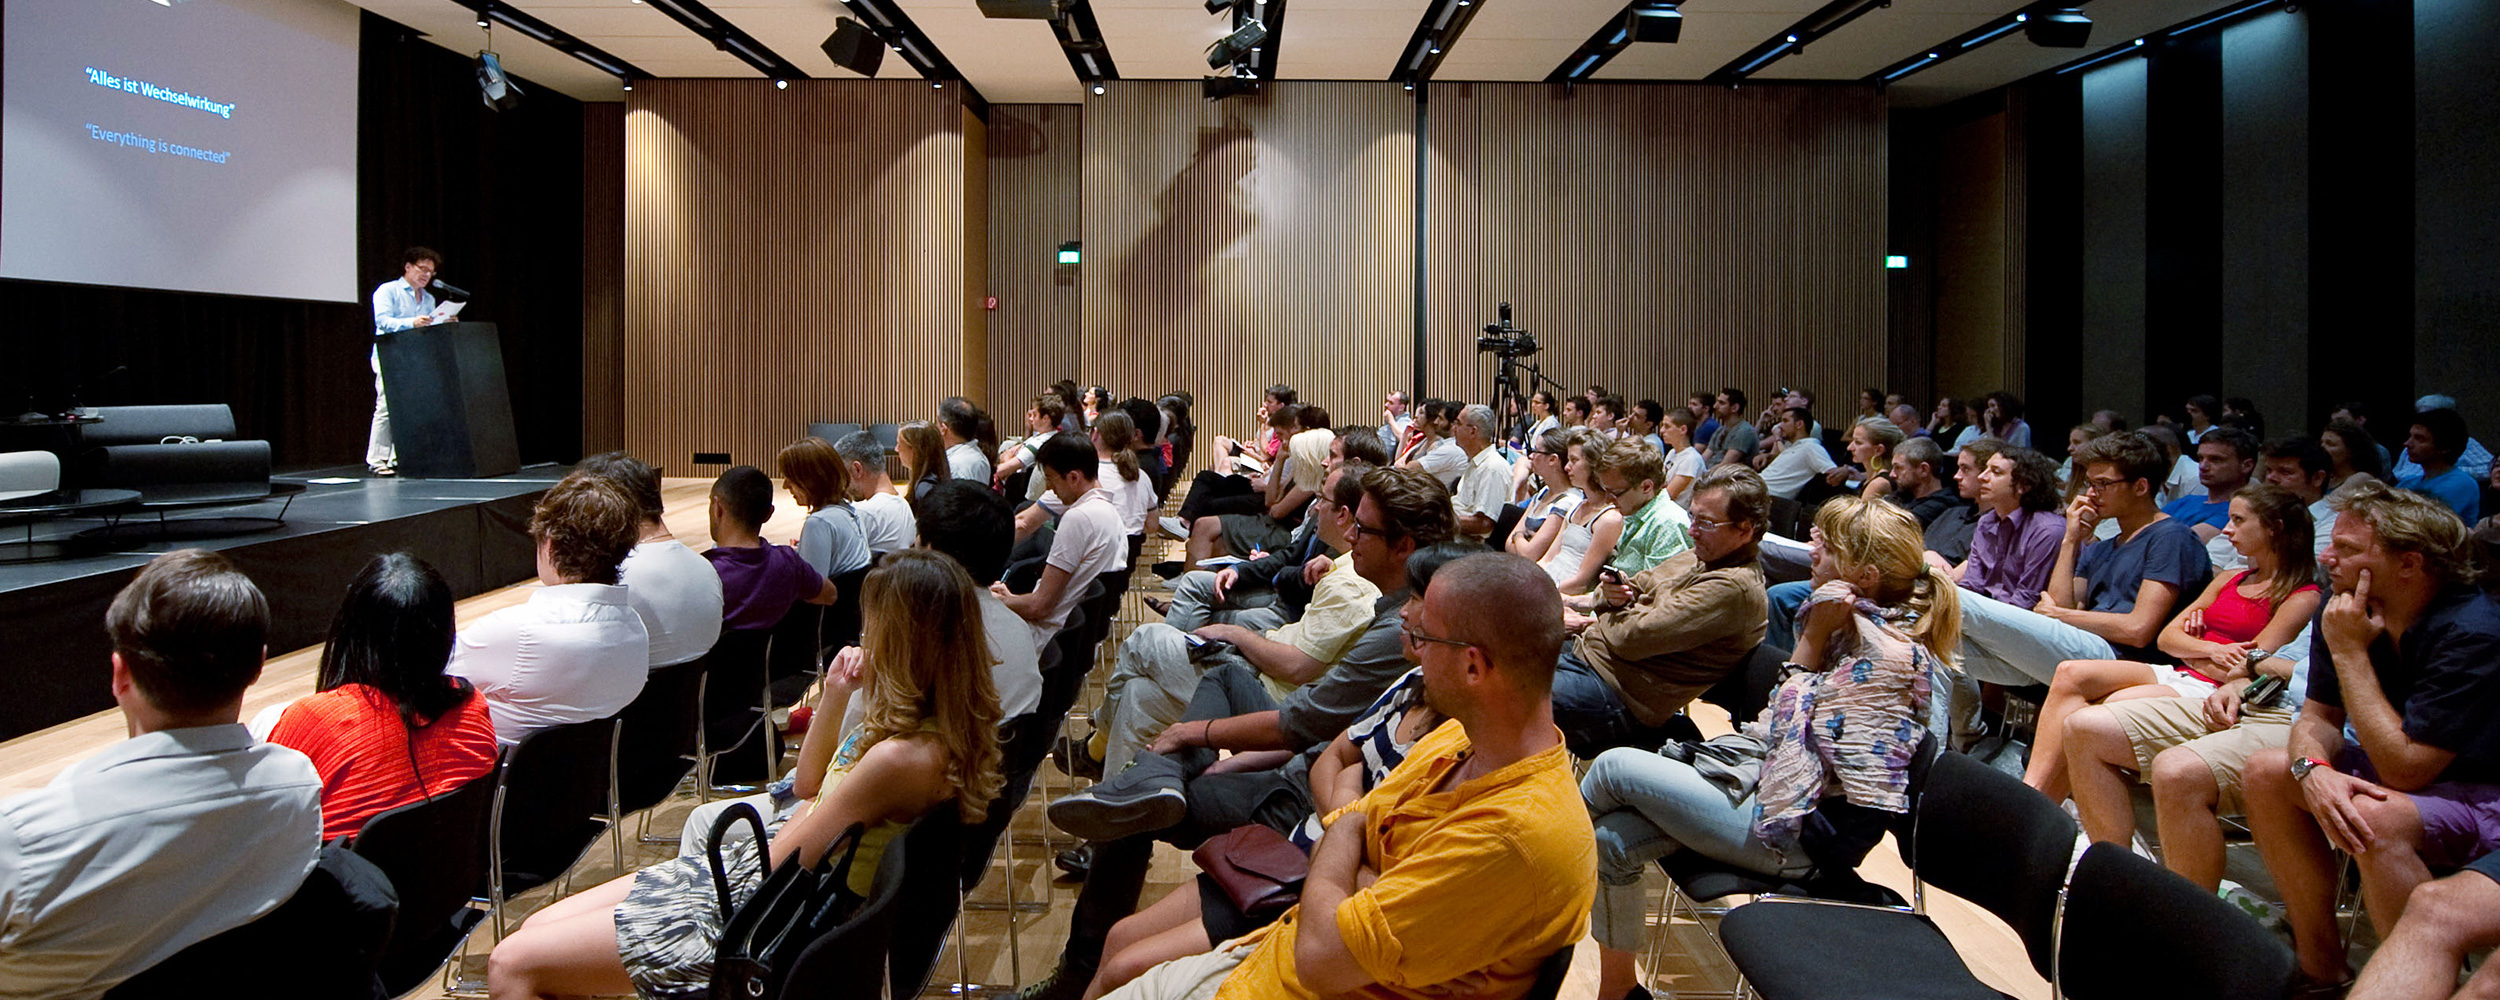 Audience watching Sanford Kwinter, Speculative Materialism in Architecture symposium, 2011, in the auditorium, Hotel Lone, Rovinj, © MLAUS.